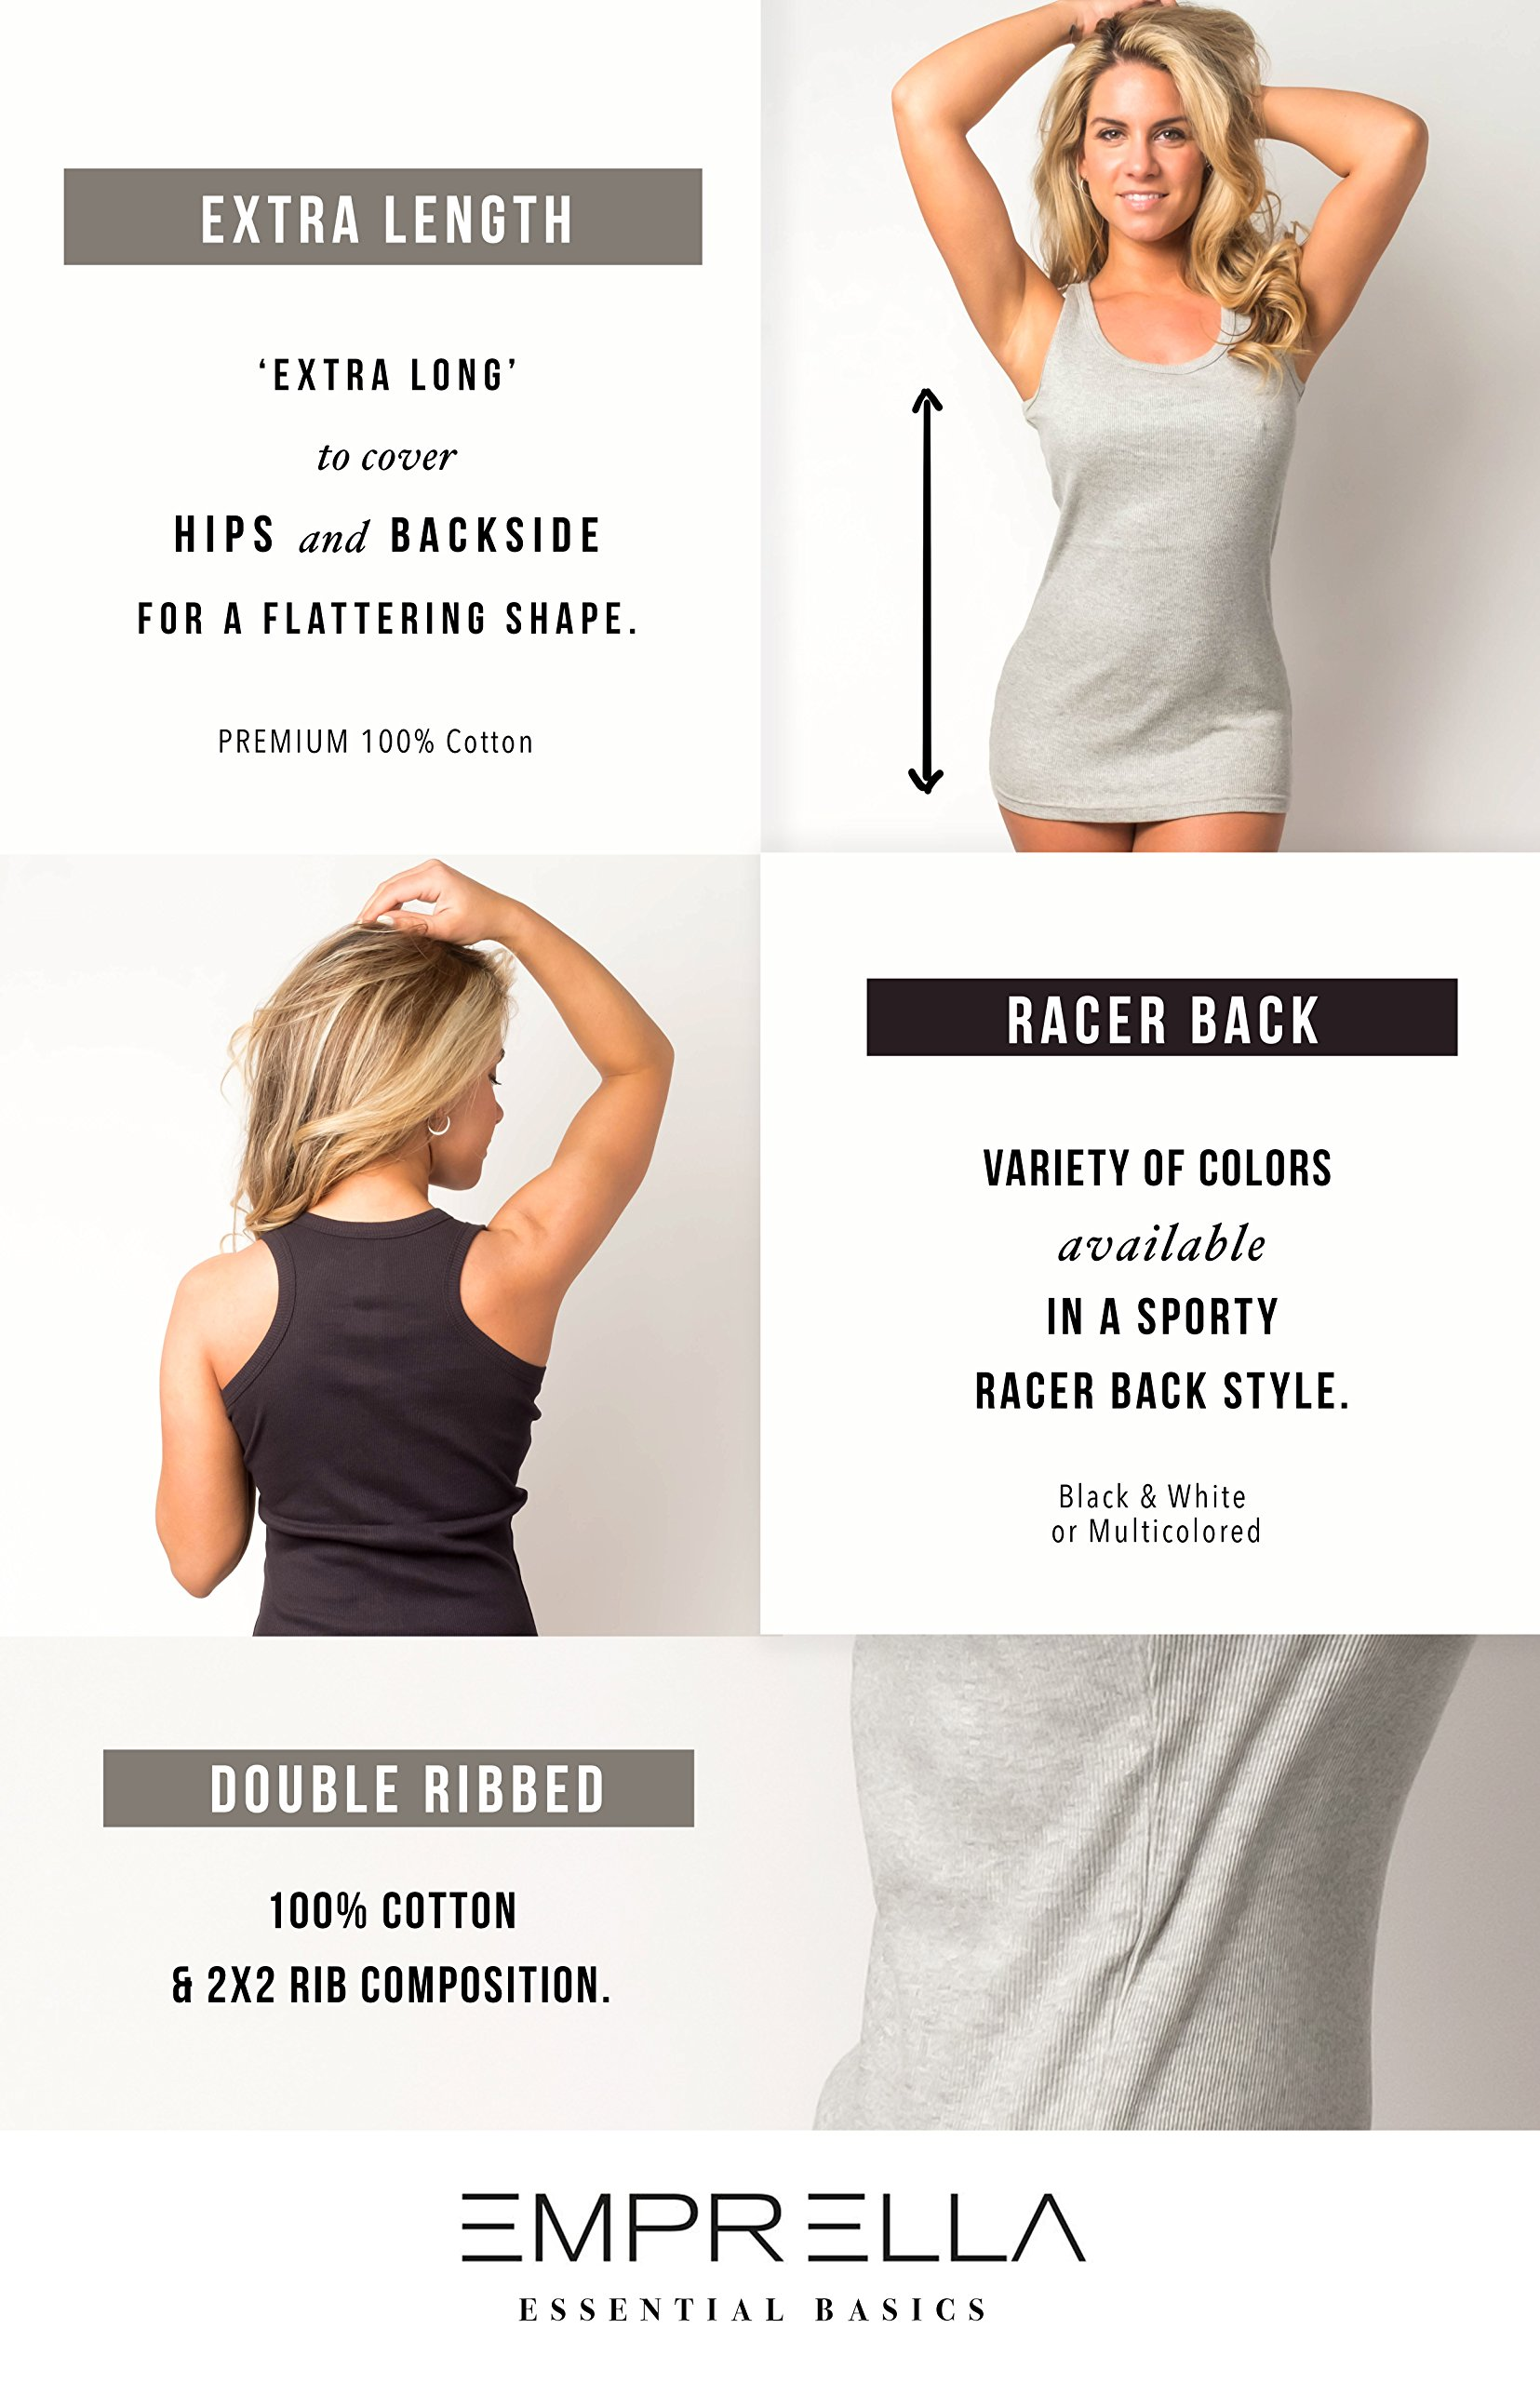 Emprella Tank Tops for Women Racerback Tanks Pack of 4 Assorted Colors (Large, Assorted 1) by Emprella (Image #3)